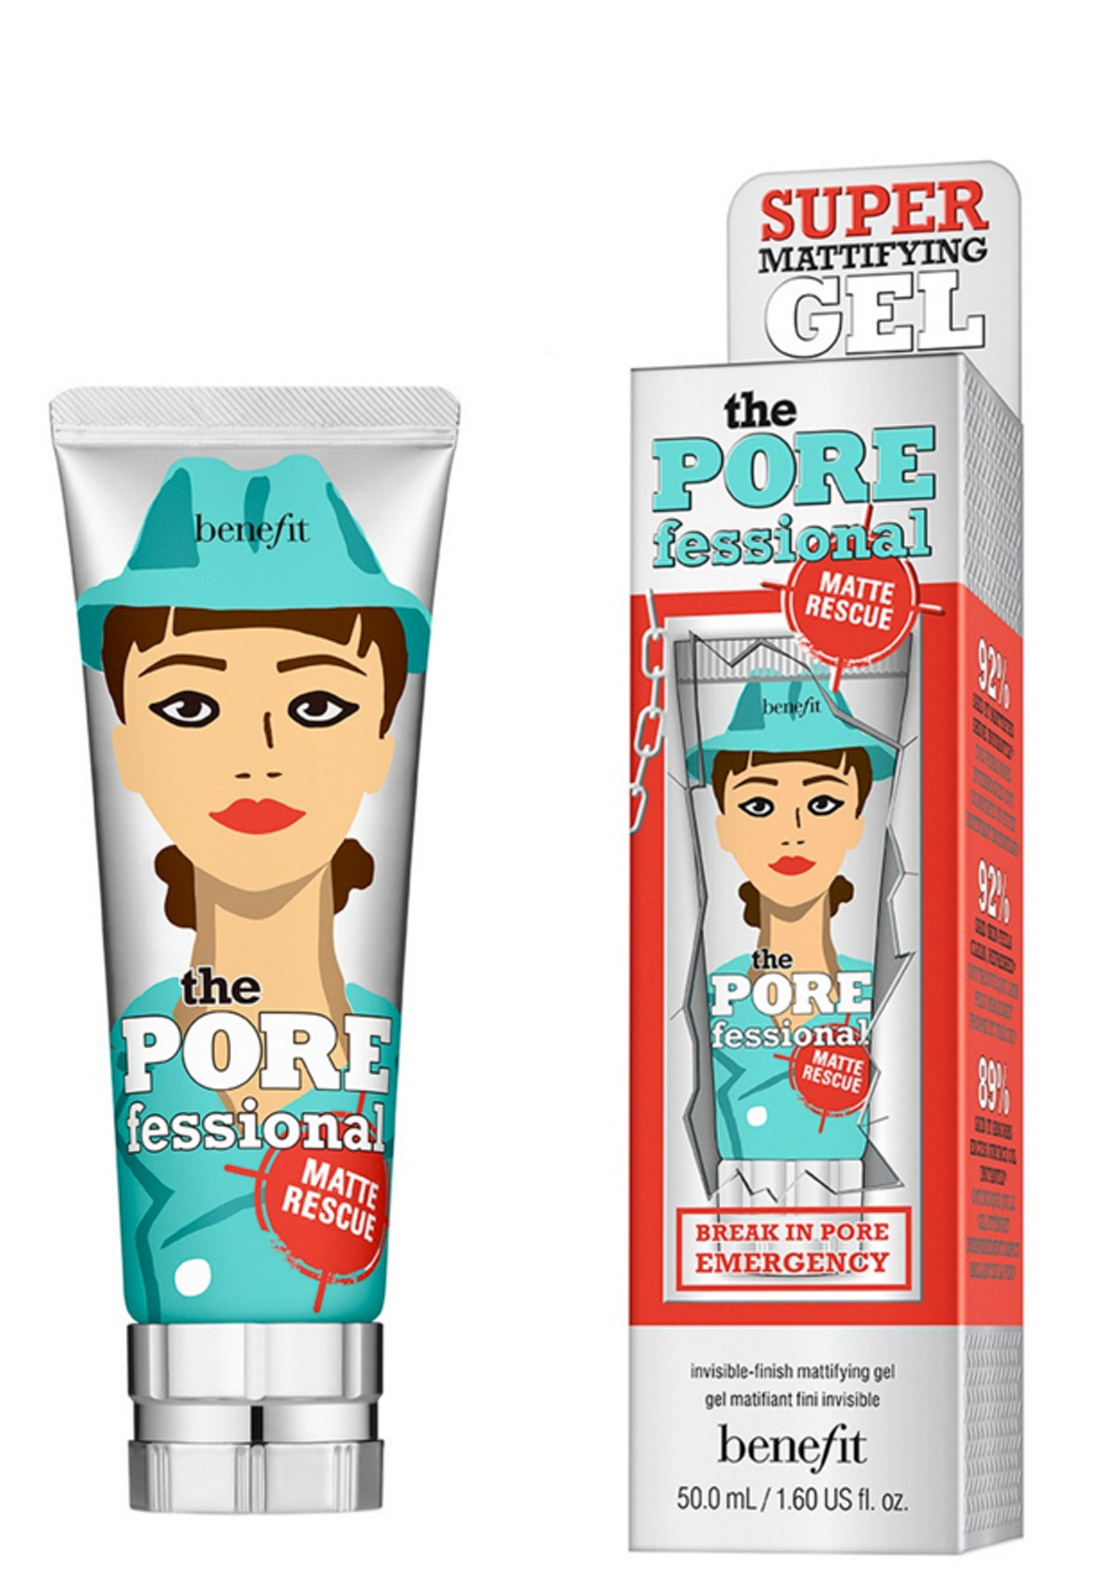 Benefit The POREfessional Matte Rescue Invisible Finish Mattifying Gel